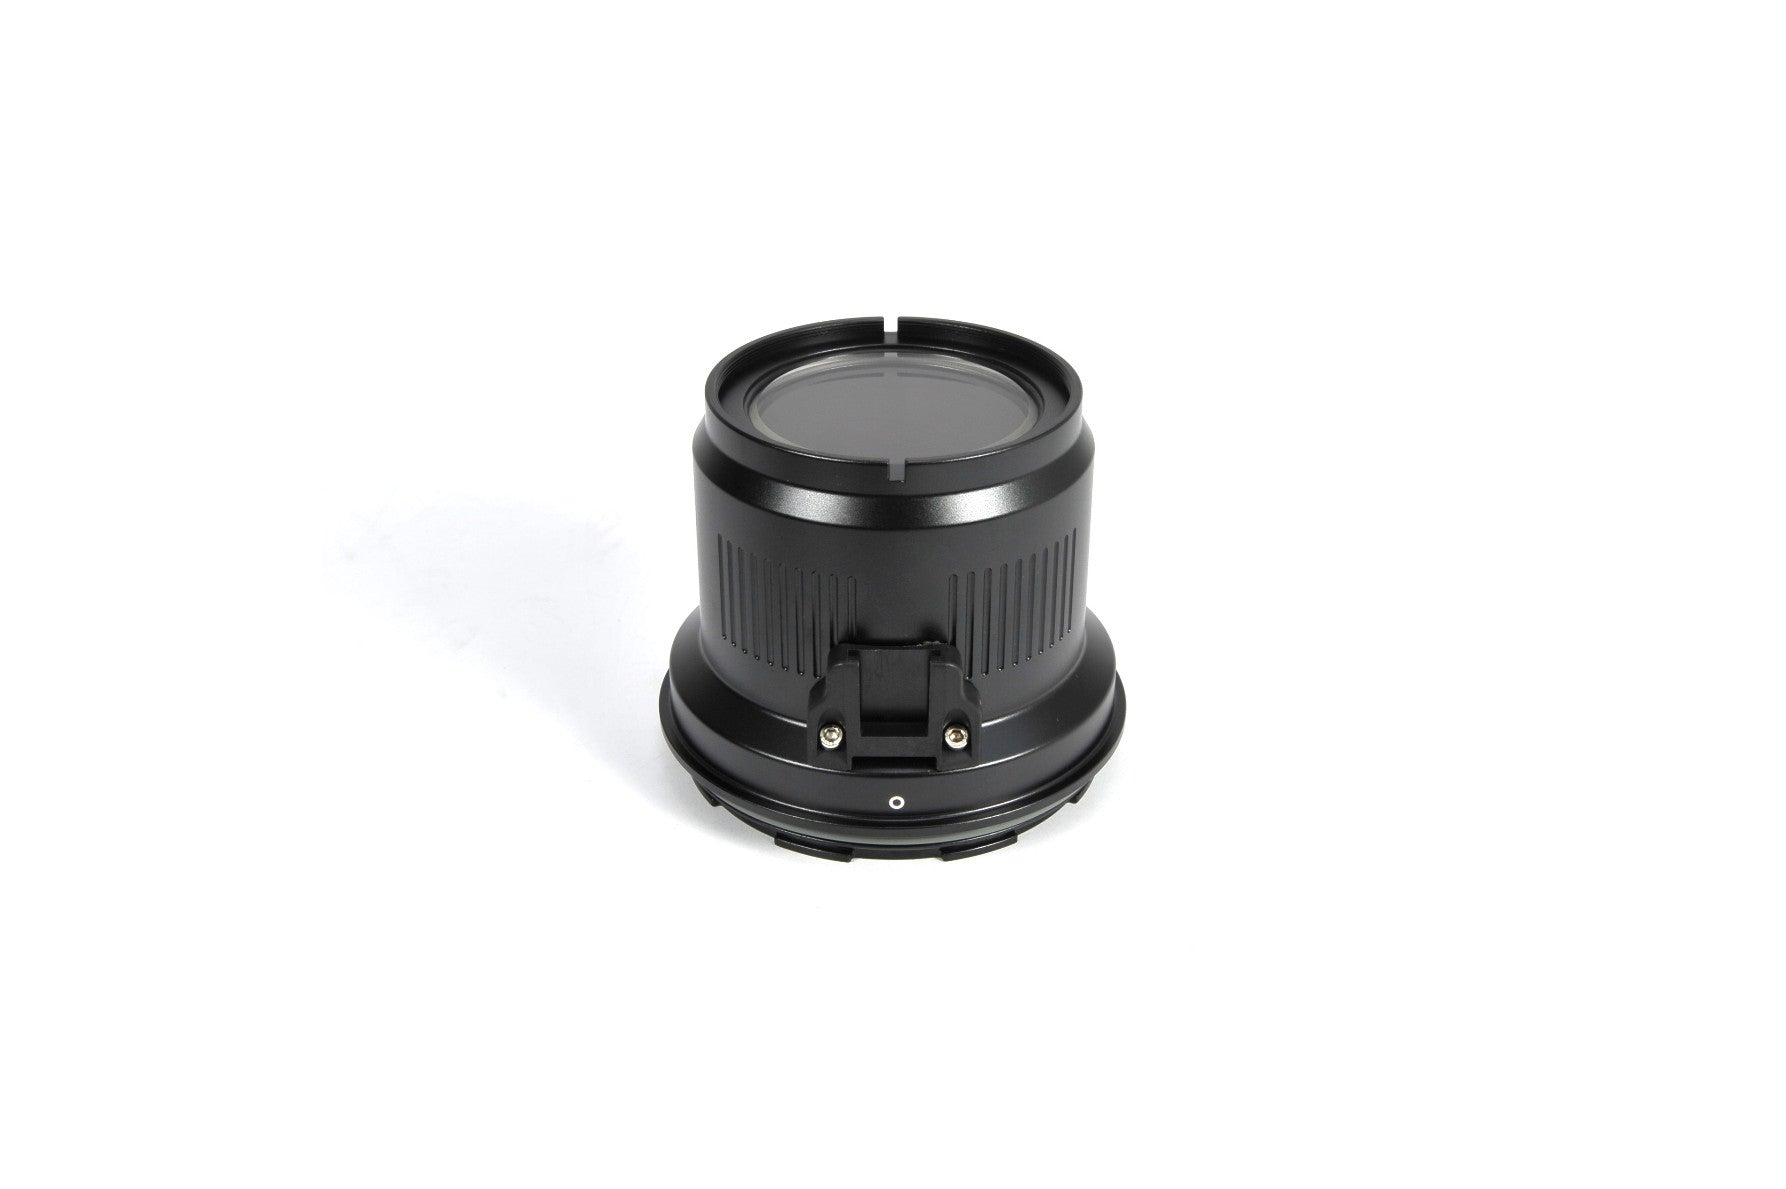 Nauticam Flat Port 66 with M77 Thread for Sony FE 28-70mm F3.5-5.6 OSS (for NA-A7II/A9) - 37124